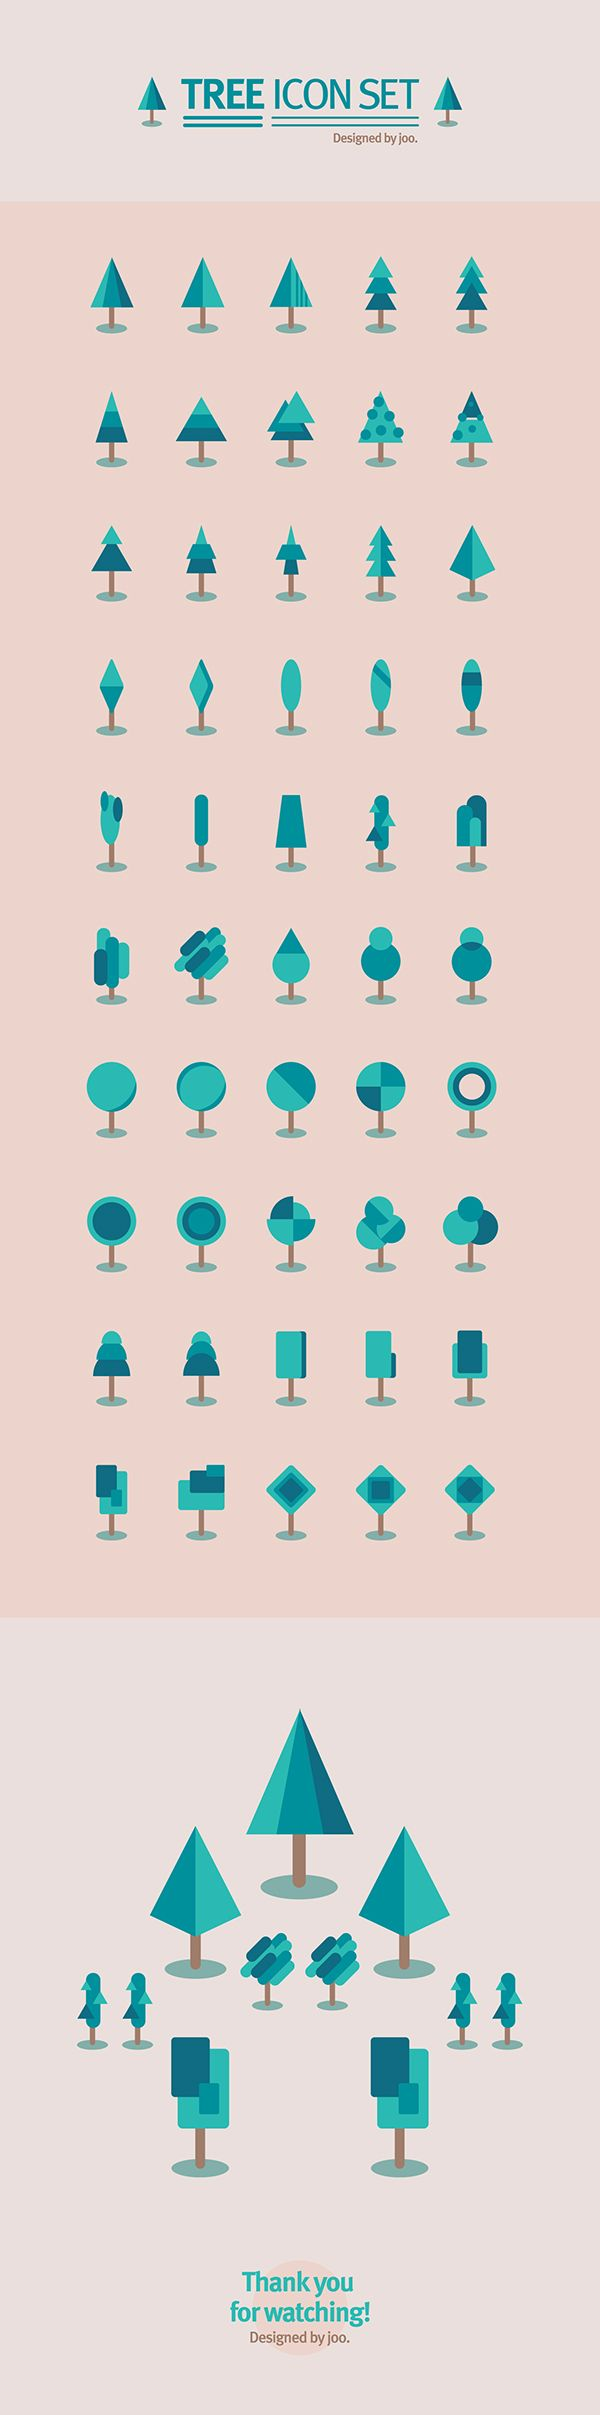 50 tree icon set on Behance